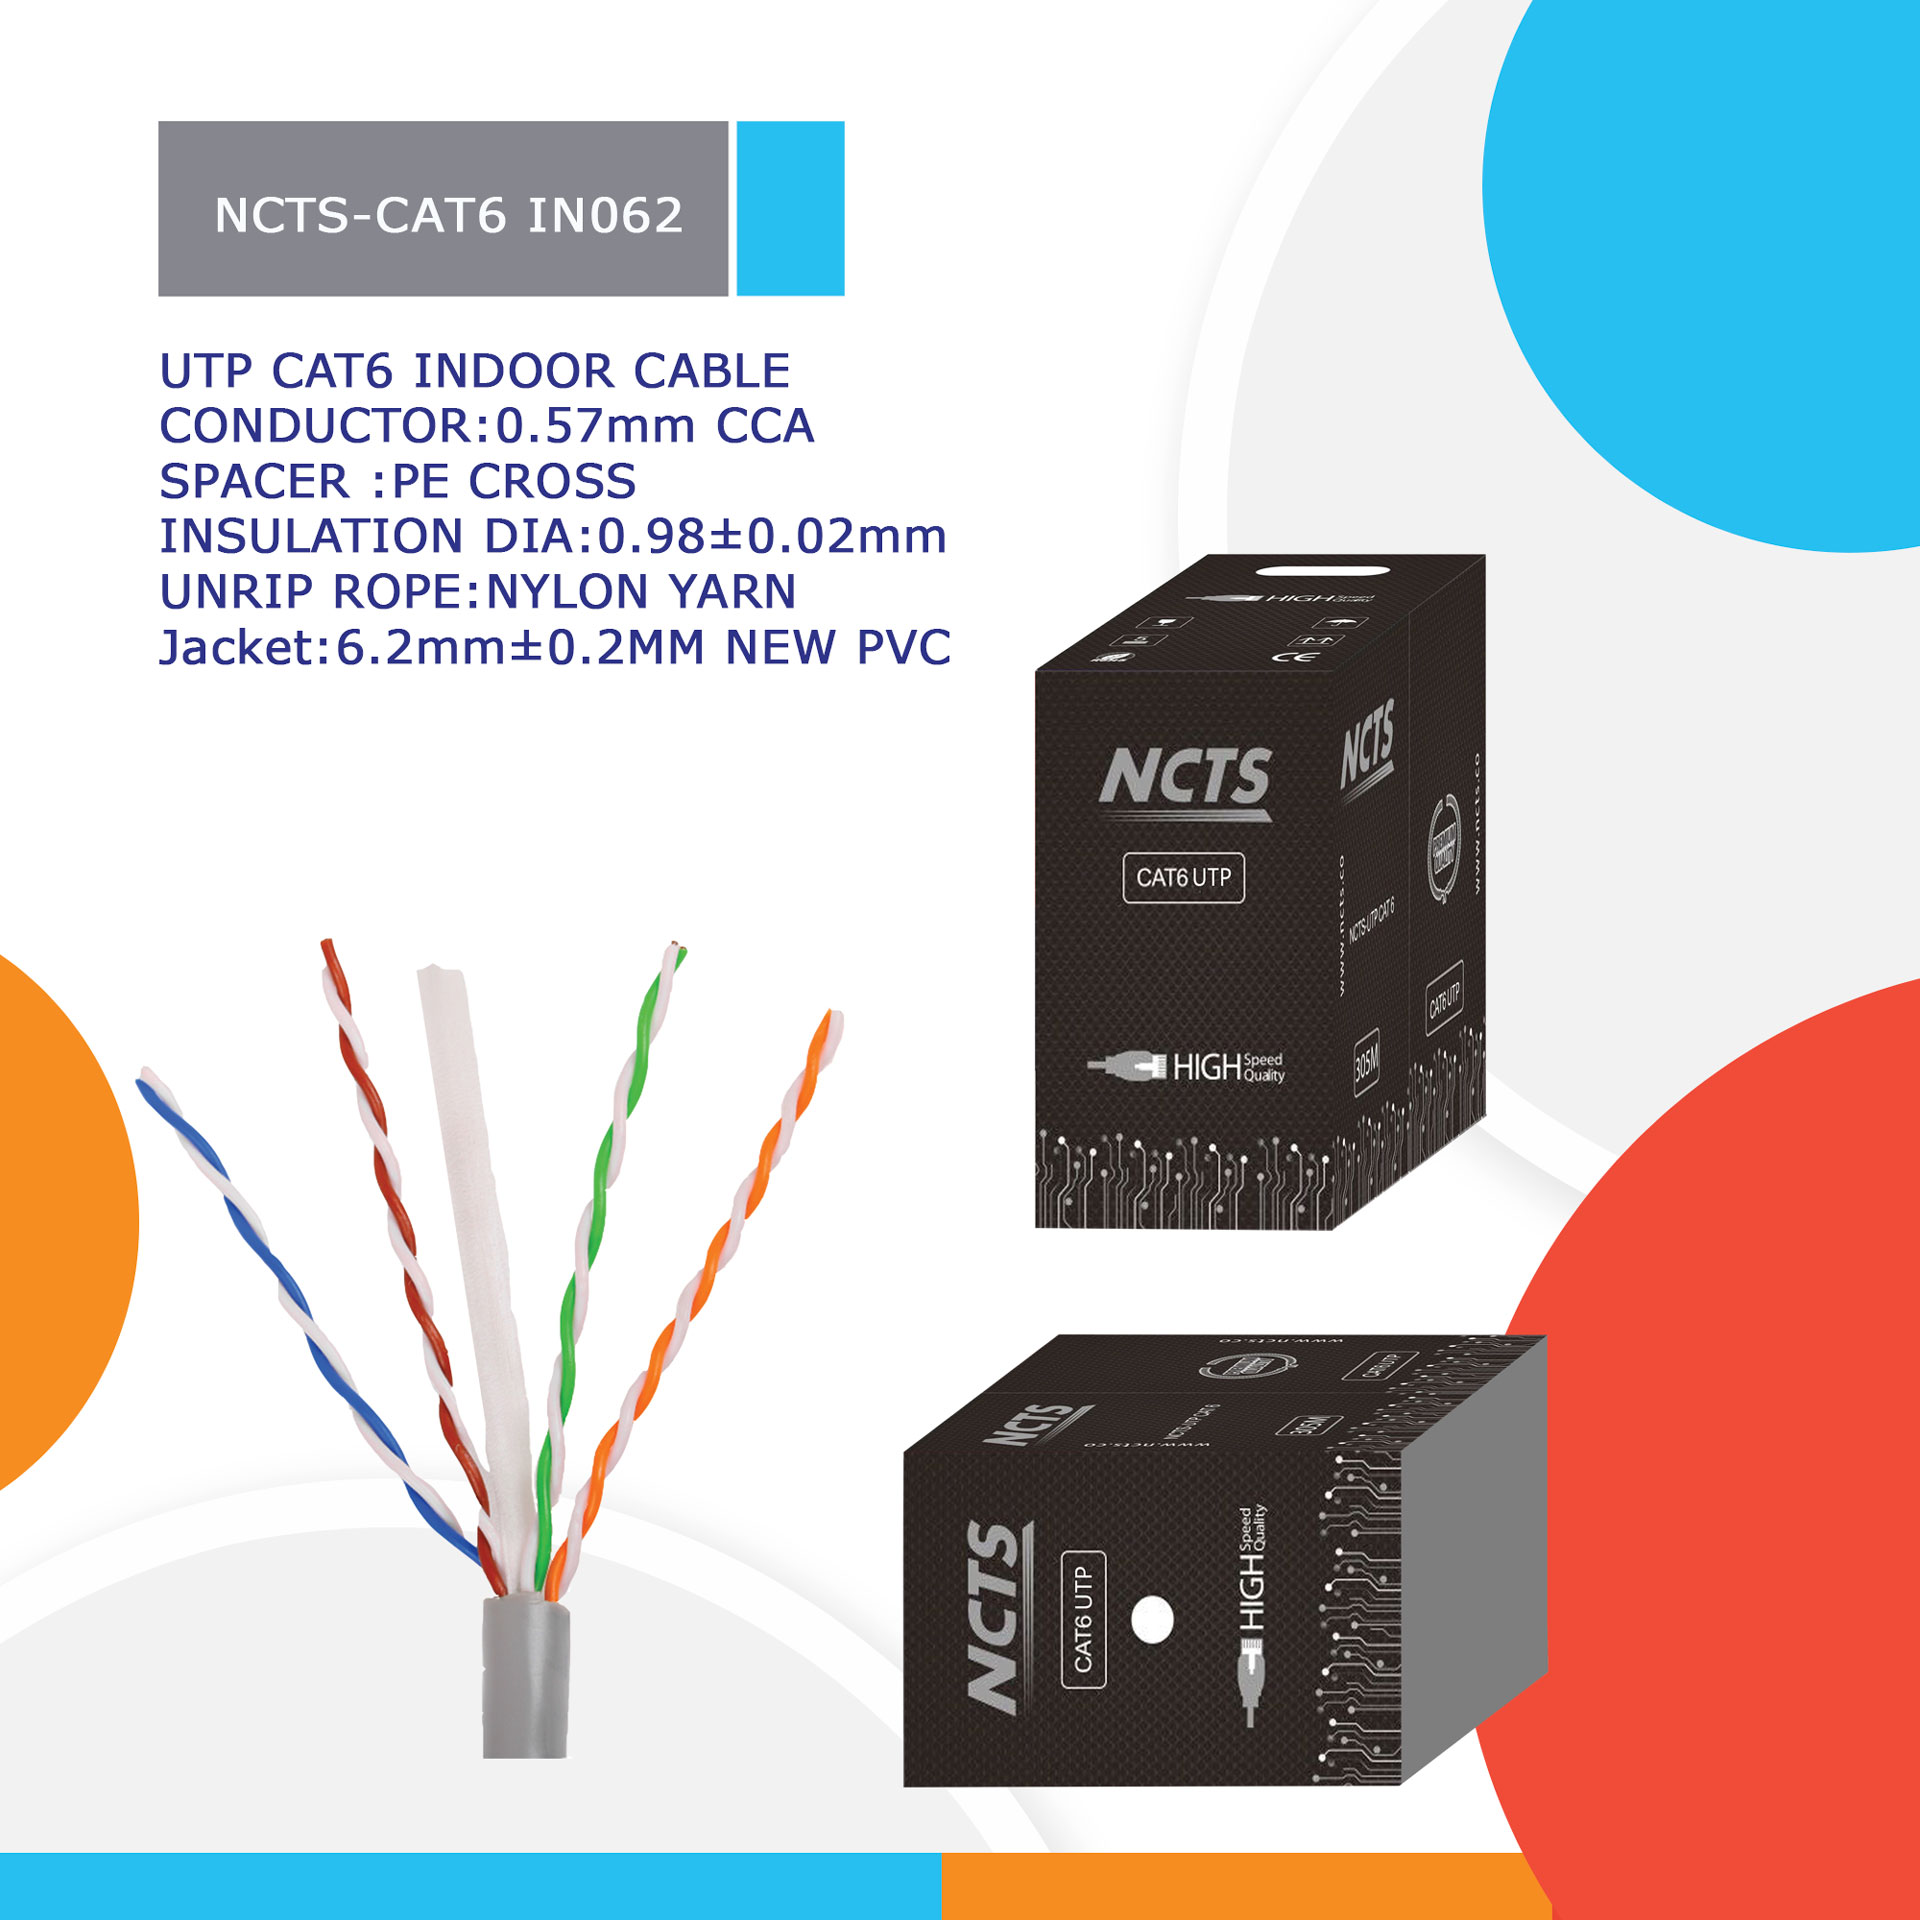 NCTS-CAT6 IN062